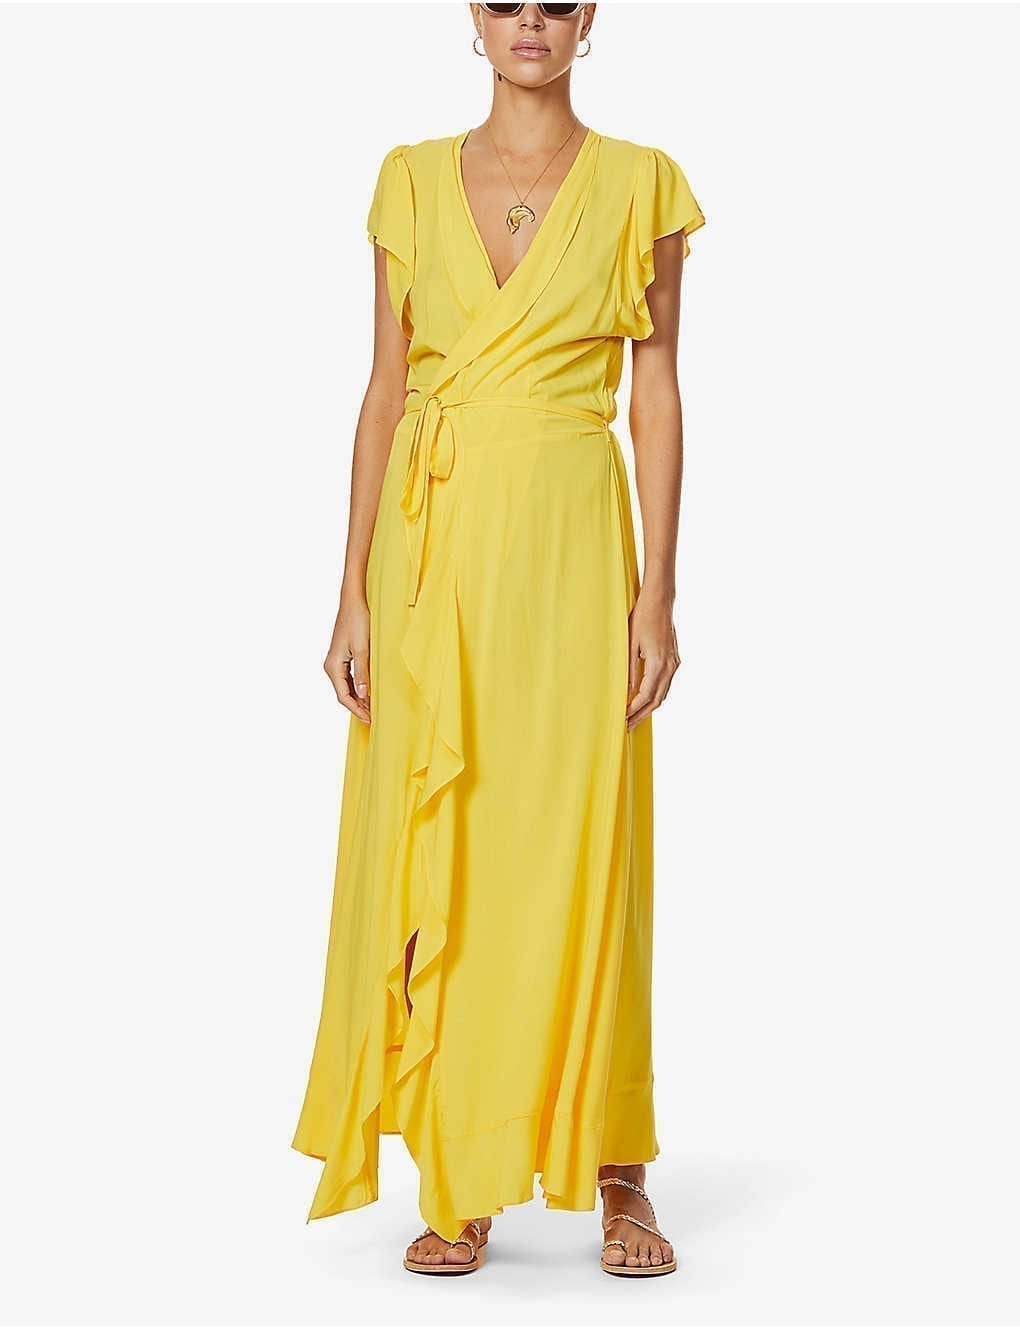 MELISSA ODABASH Brianna Ruffled Woven Maxi Dress